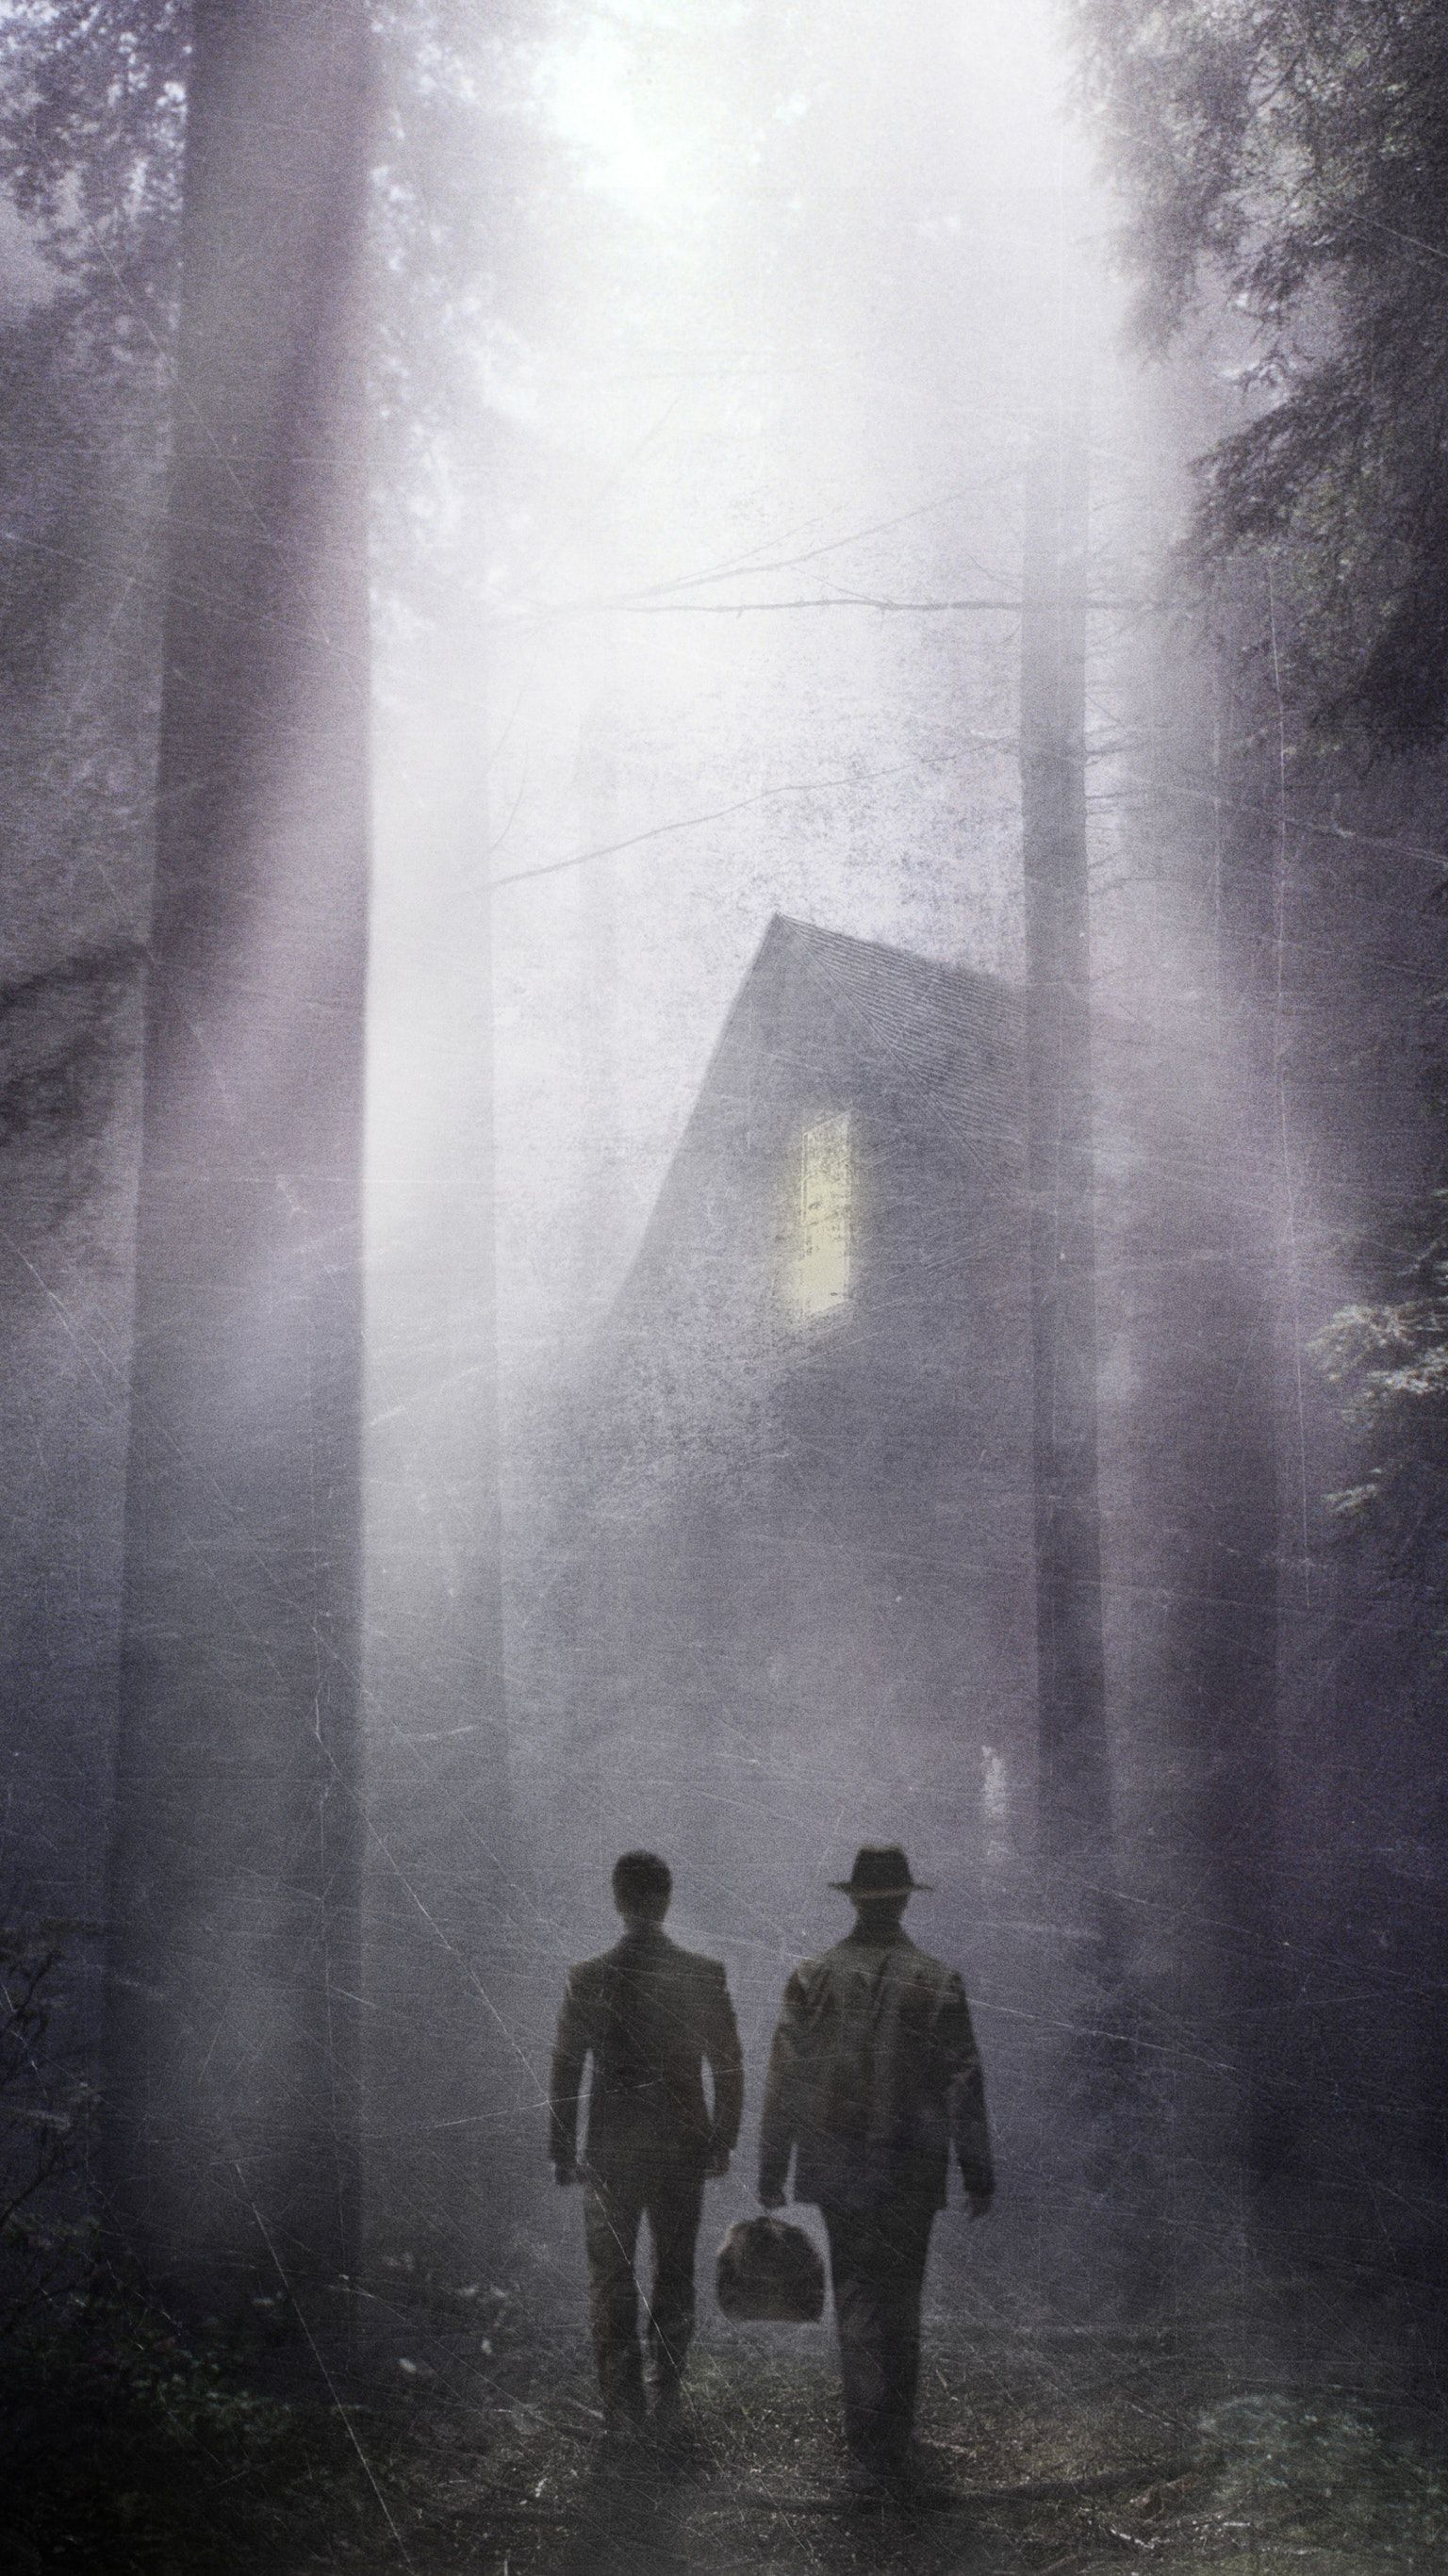 The Exorcist Phone Wallpaper In 2019 The Exorcist Season 2